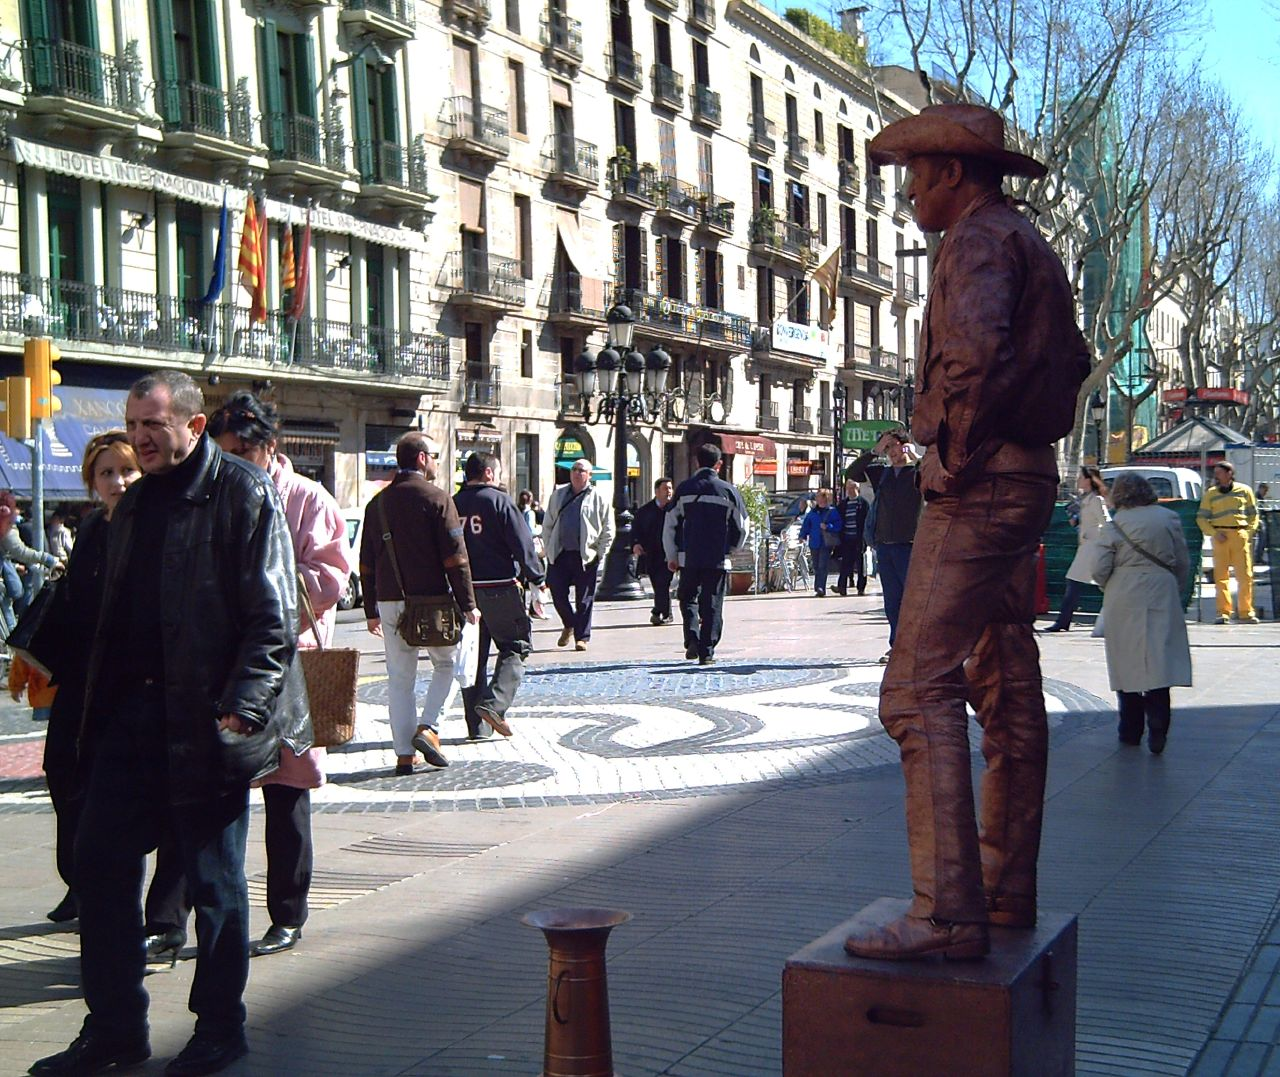 Barcelona Artists: Las Ramblas Cowboy